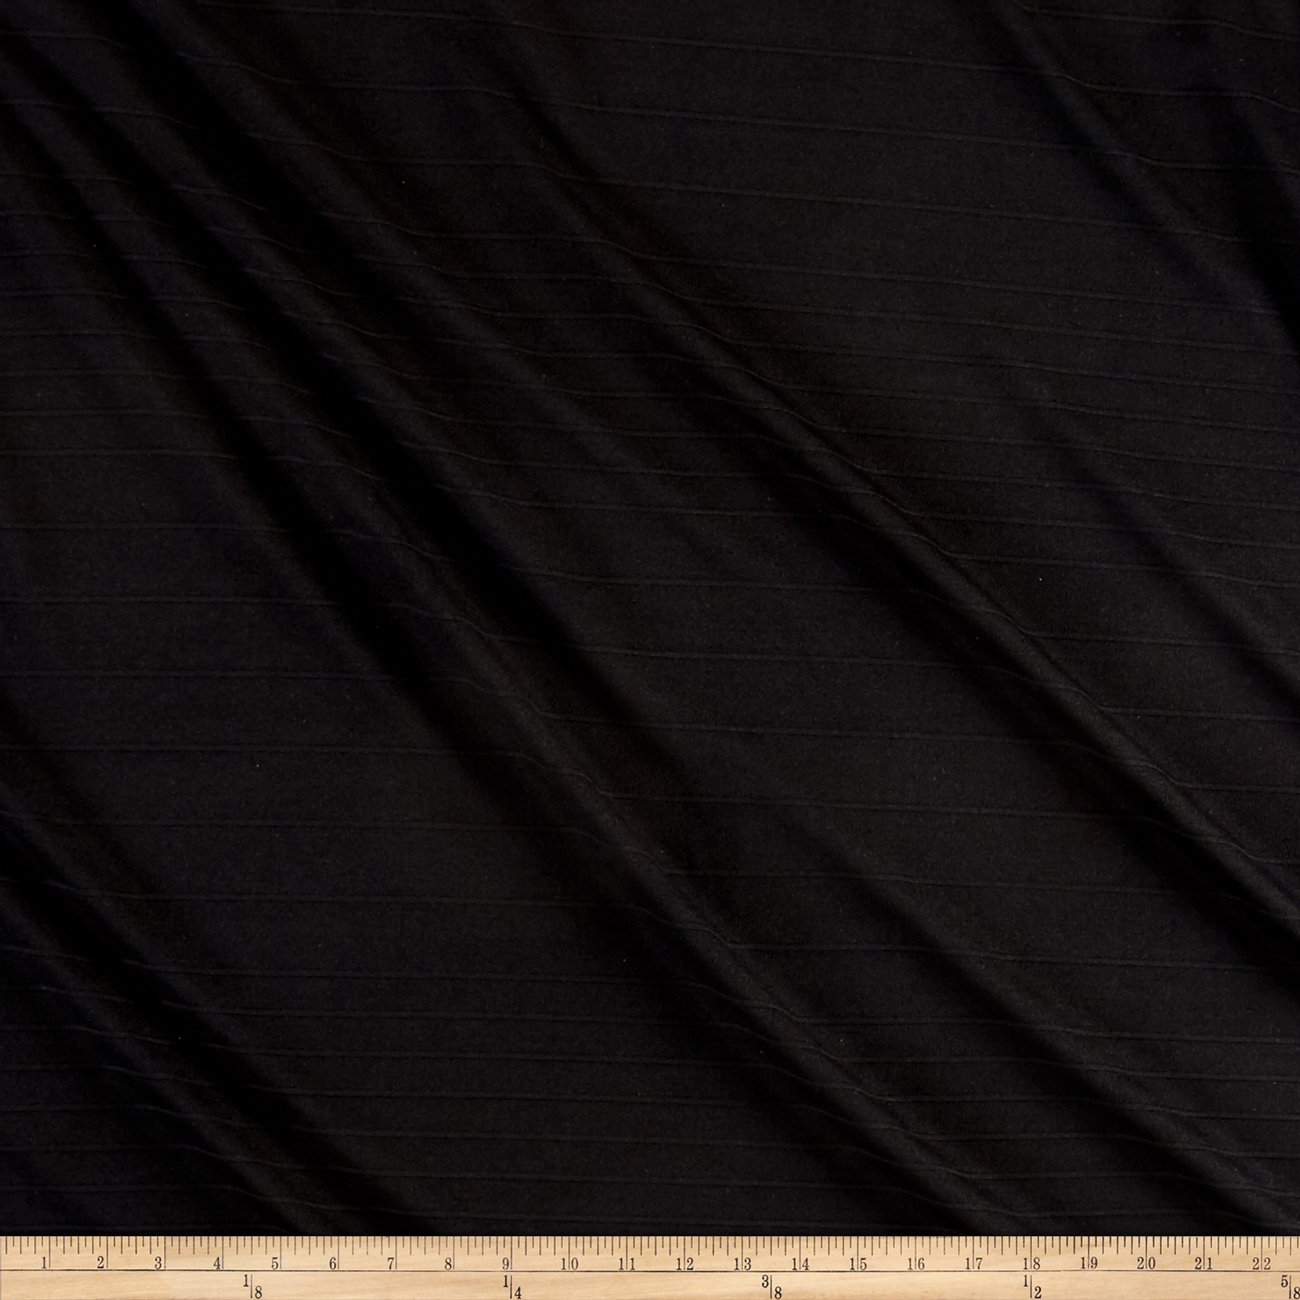 Image of Double Knit Stripe Black Fabric